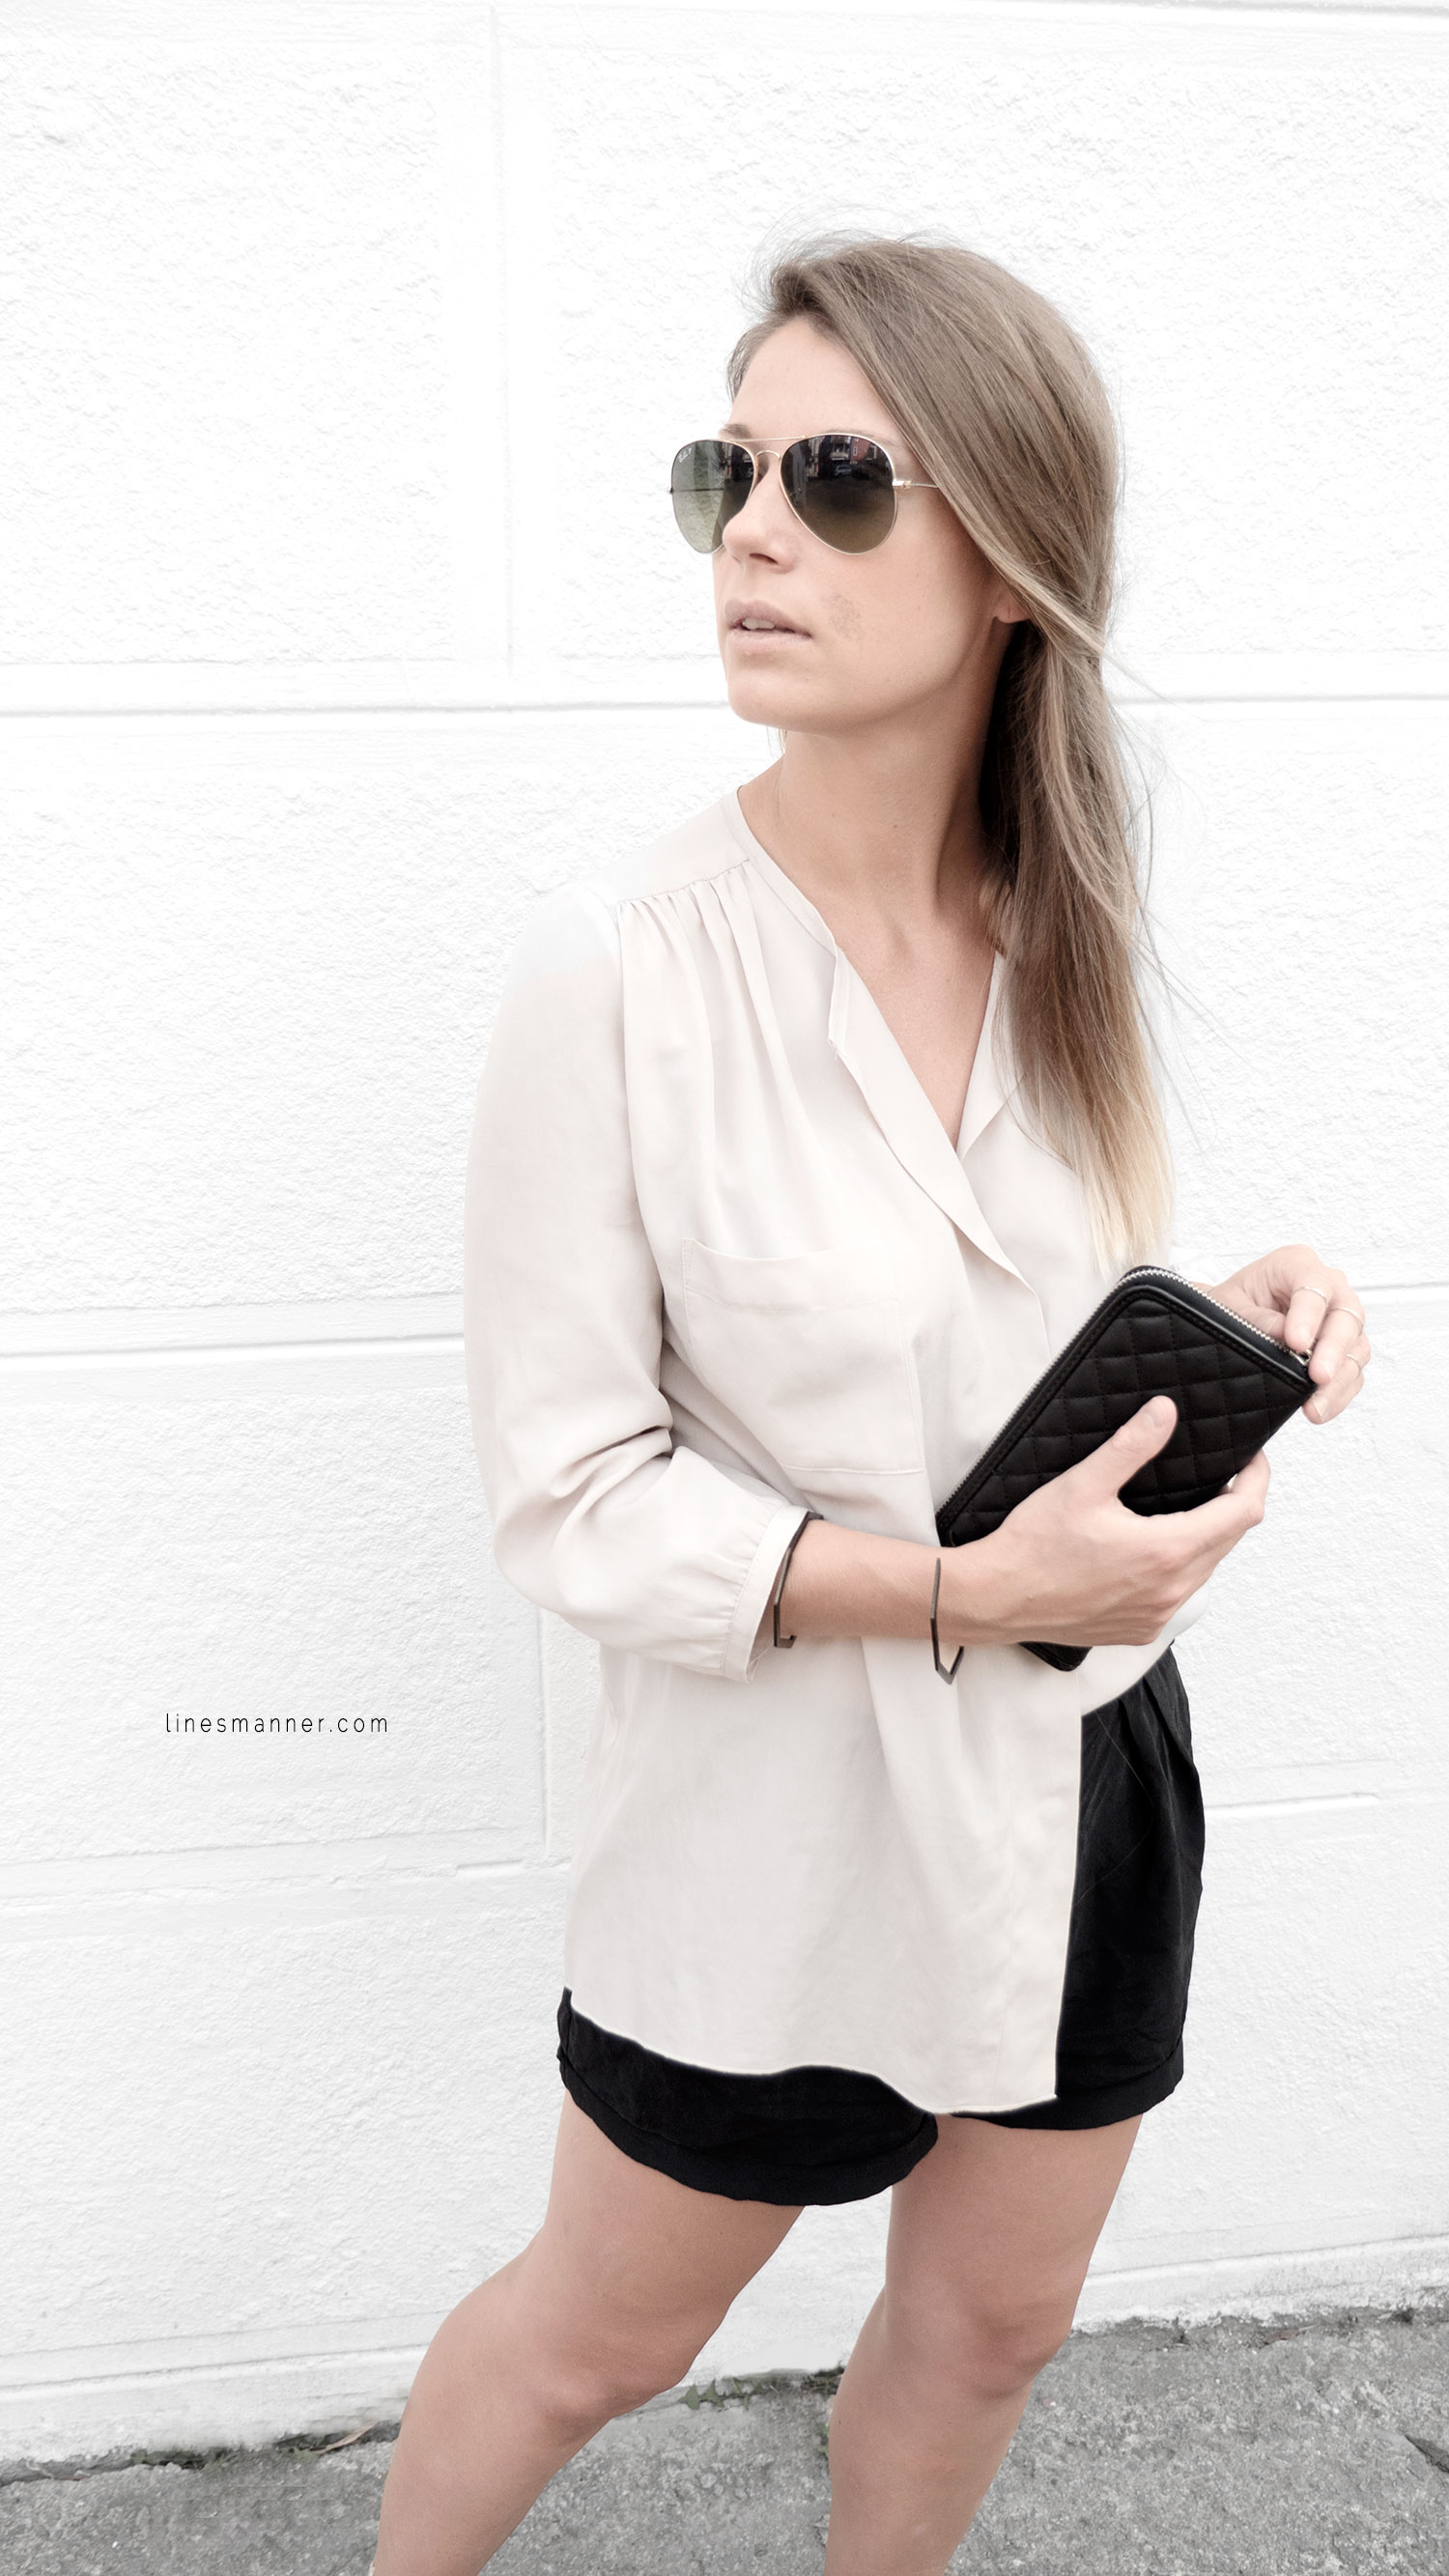 Lines-Manner-Timeless-Modern-Silk-Minimalism-Elegant-Essentials-Slides-Quality-Trend-Textures-Style-Fashion-Contemporary-Comfort-Outfit-Shopmoortown-Relaxed_fit-Slouchy-Fresh-Brightly-Versatility-10